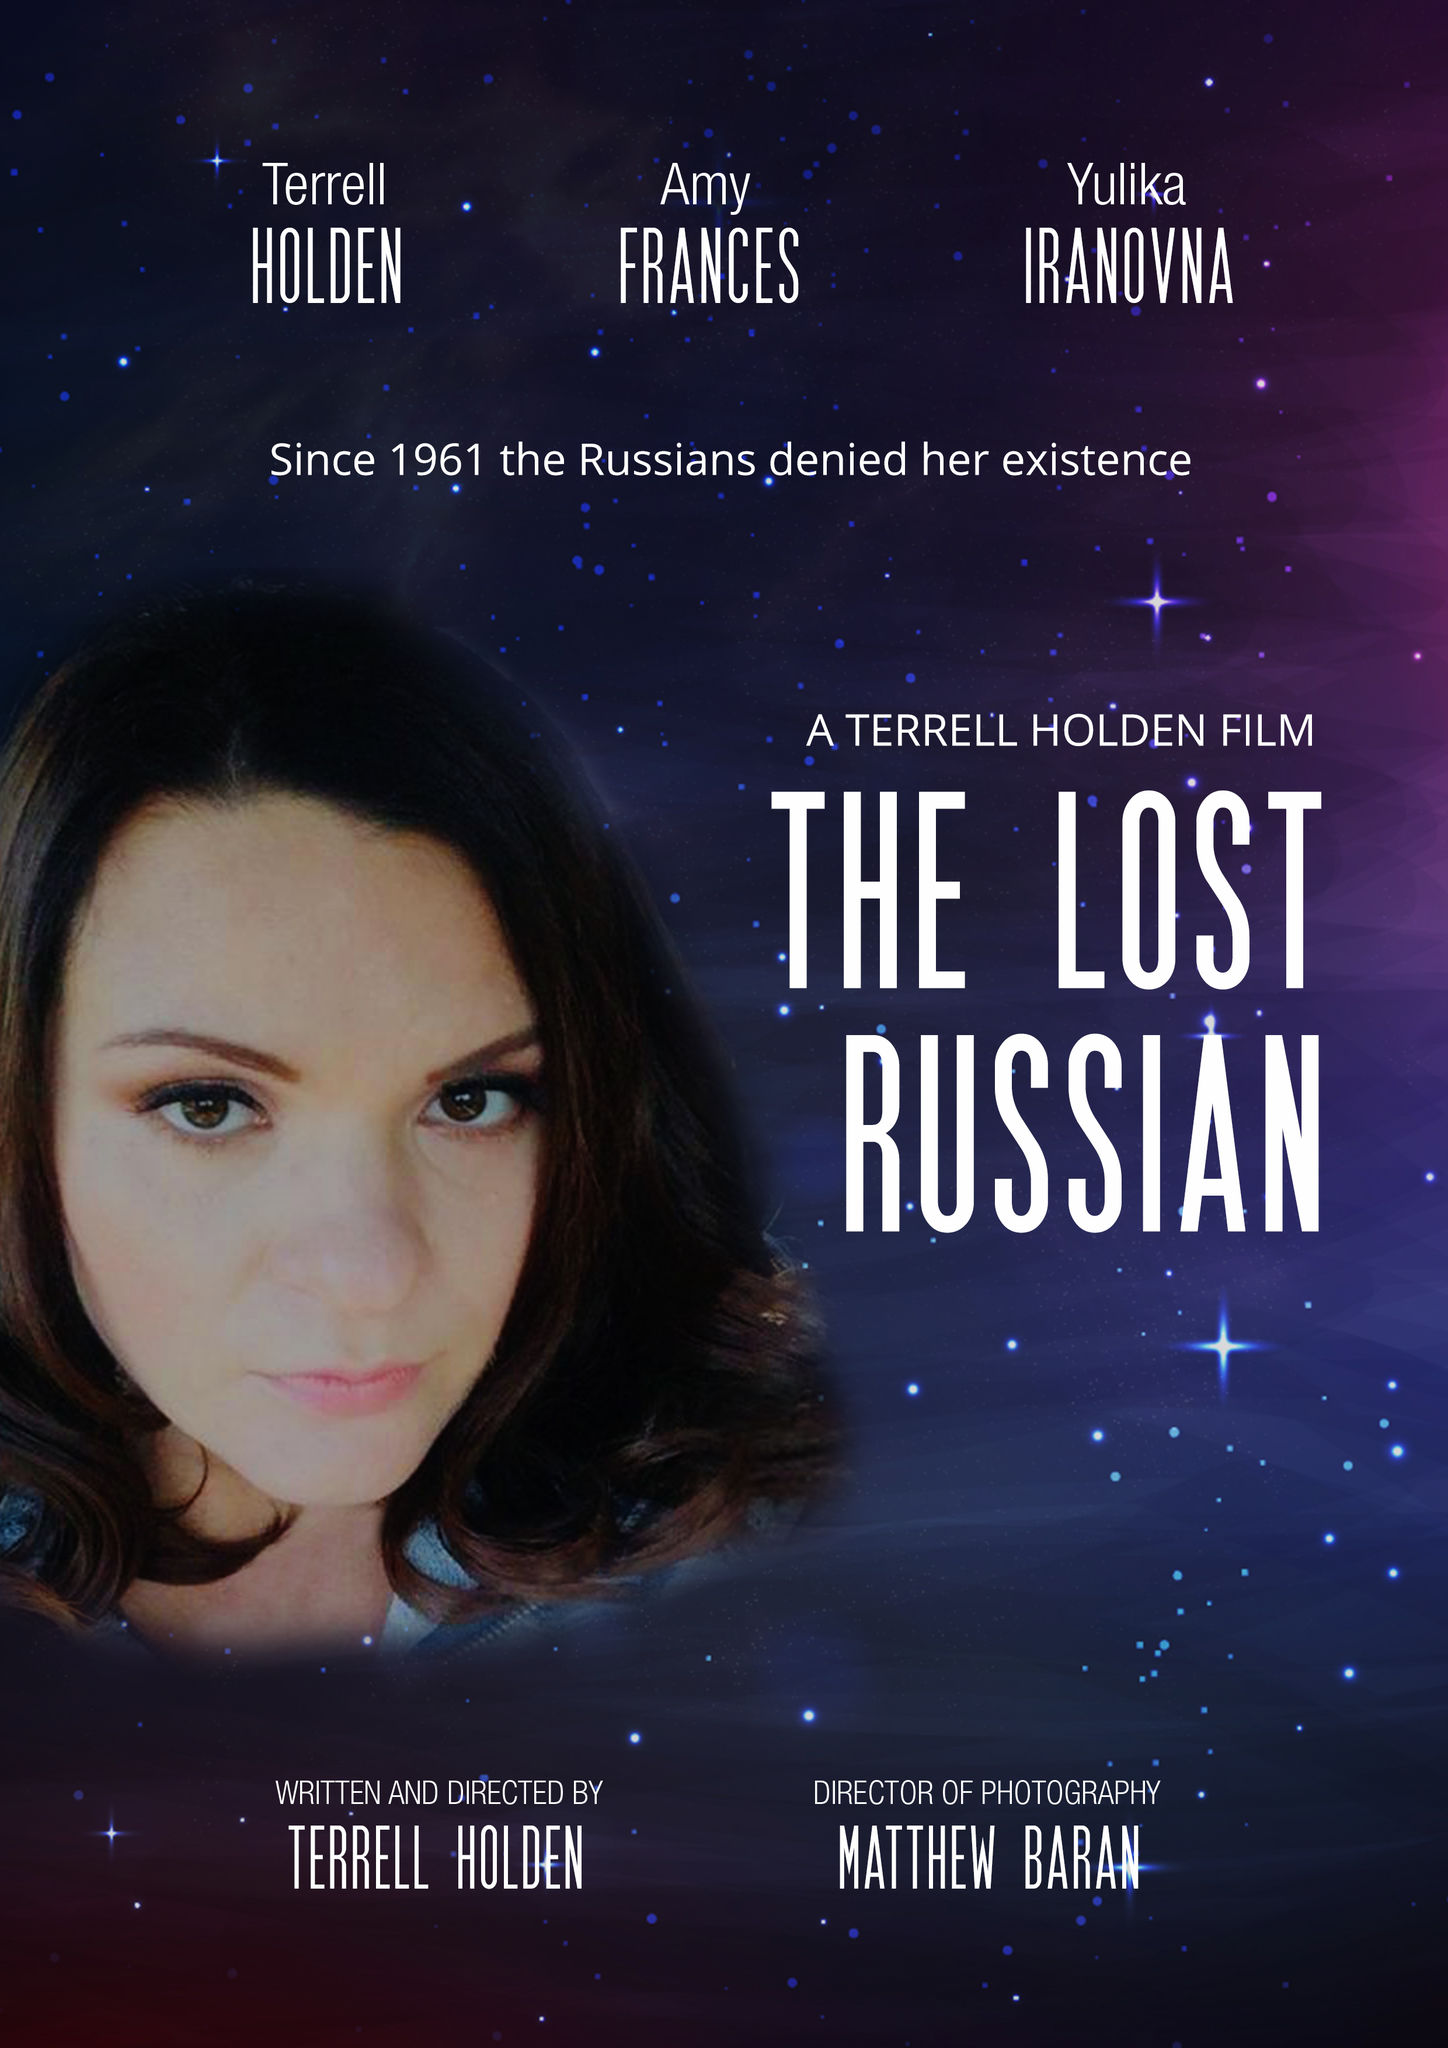 The Lost Russian